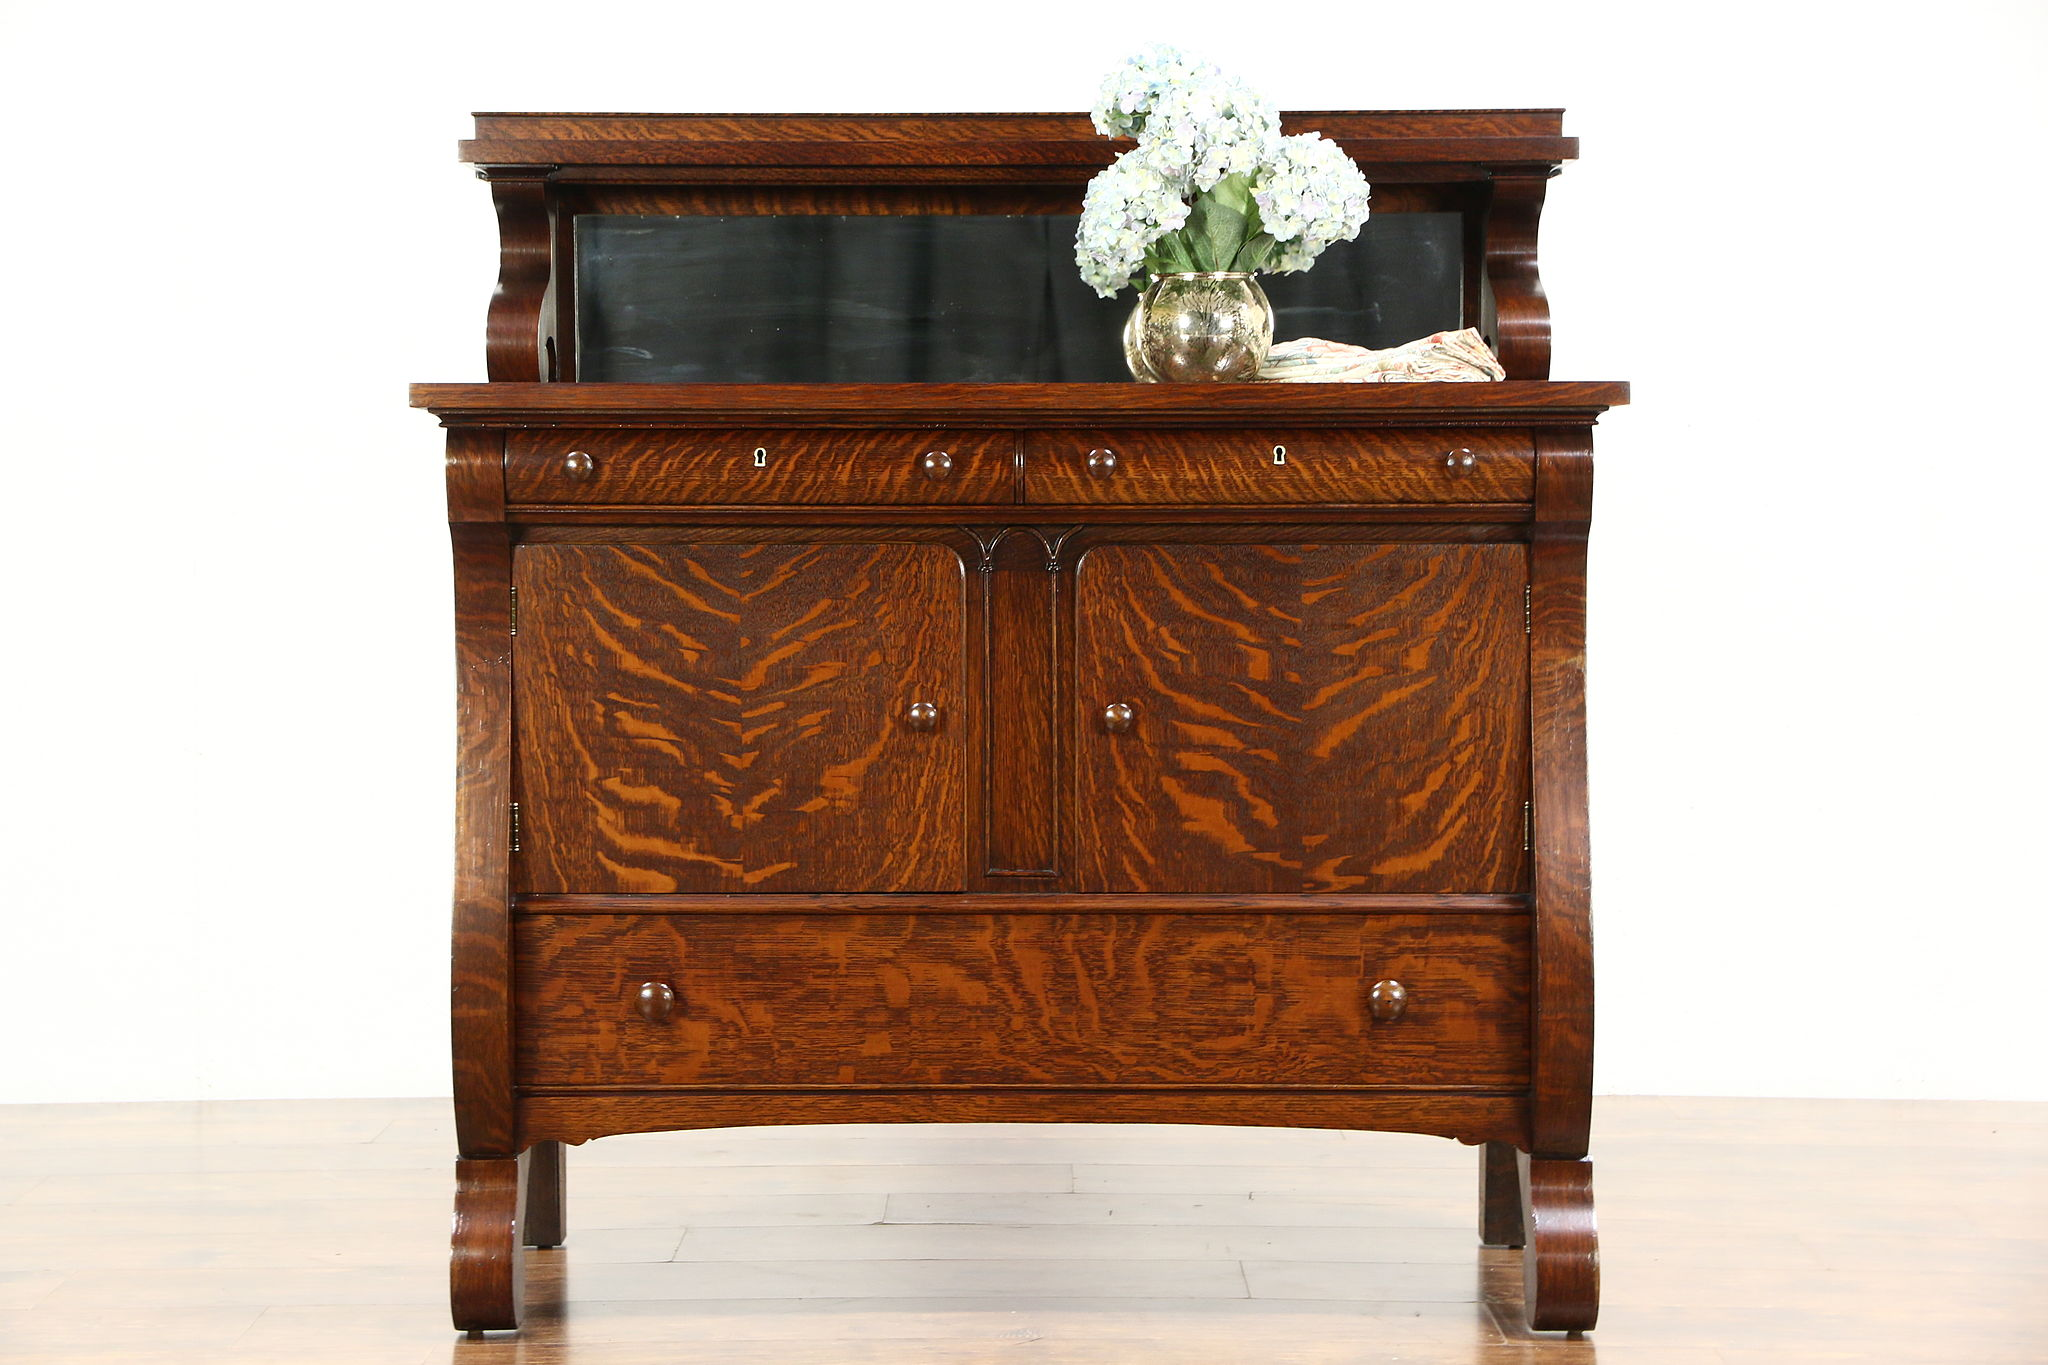 Vintage Oak Sideboard With Mirror Antique Sideboard Buffet With Mirror Mirror Ideas